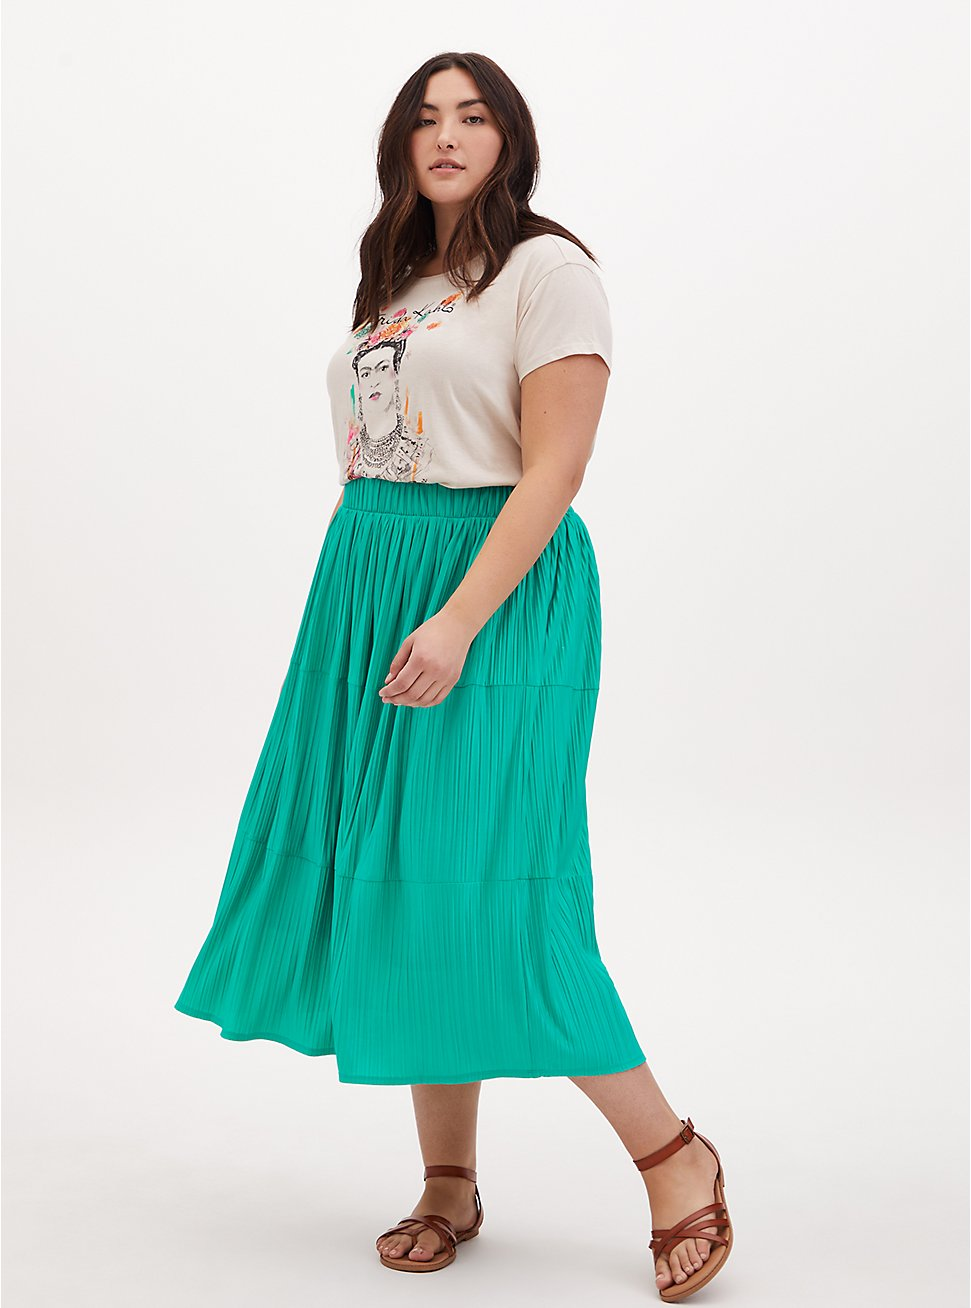 Turquoise Accordion Pleated Tiered Tea Length Skirt, DYNASTY GREEN, hi-res